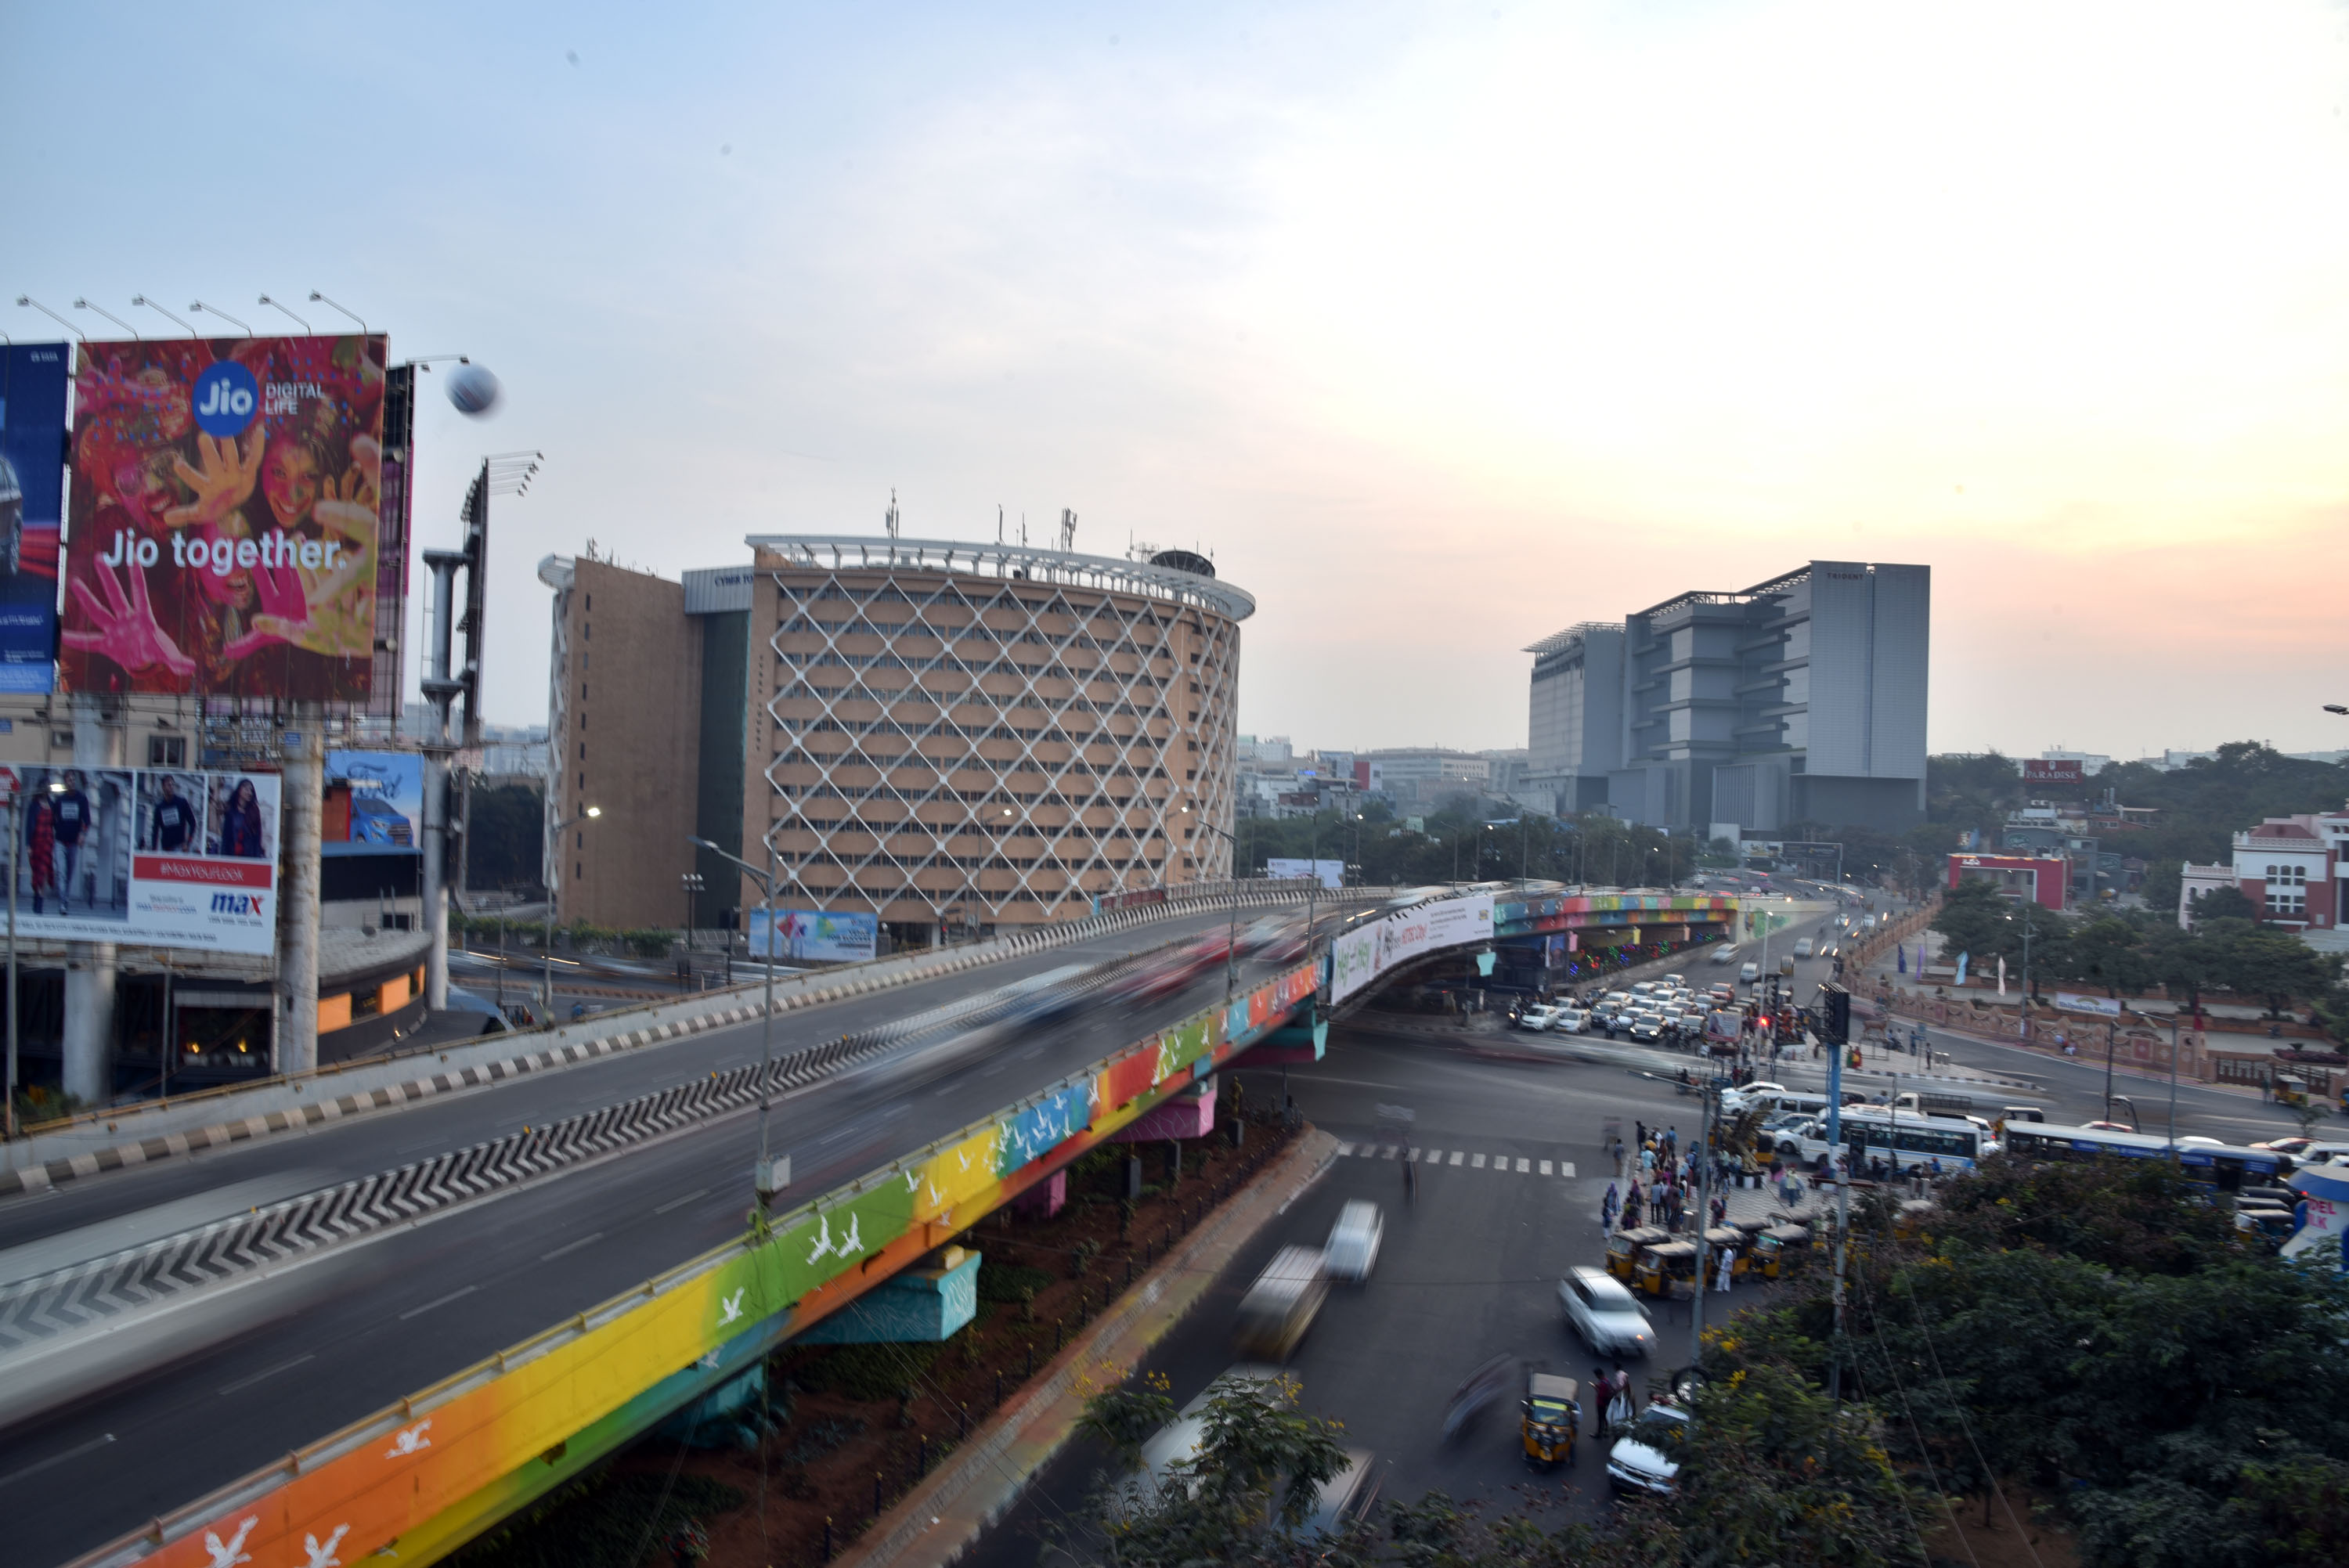 cyber towers, hitech city, hyderabad, free indian travel and stock photos